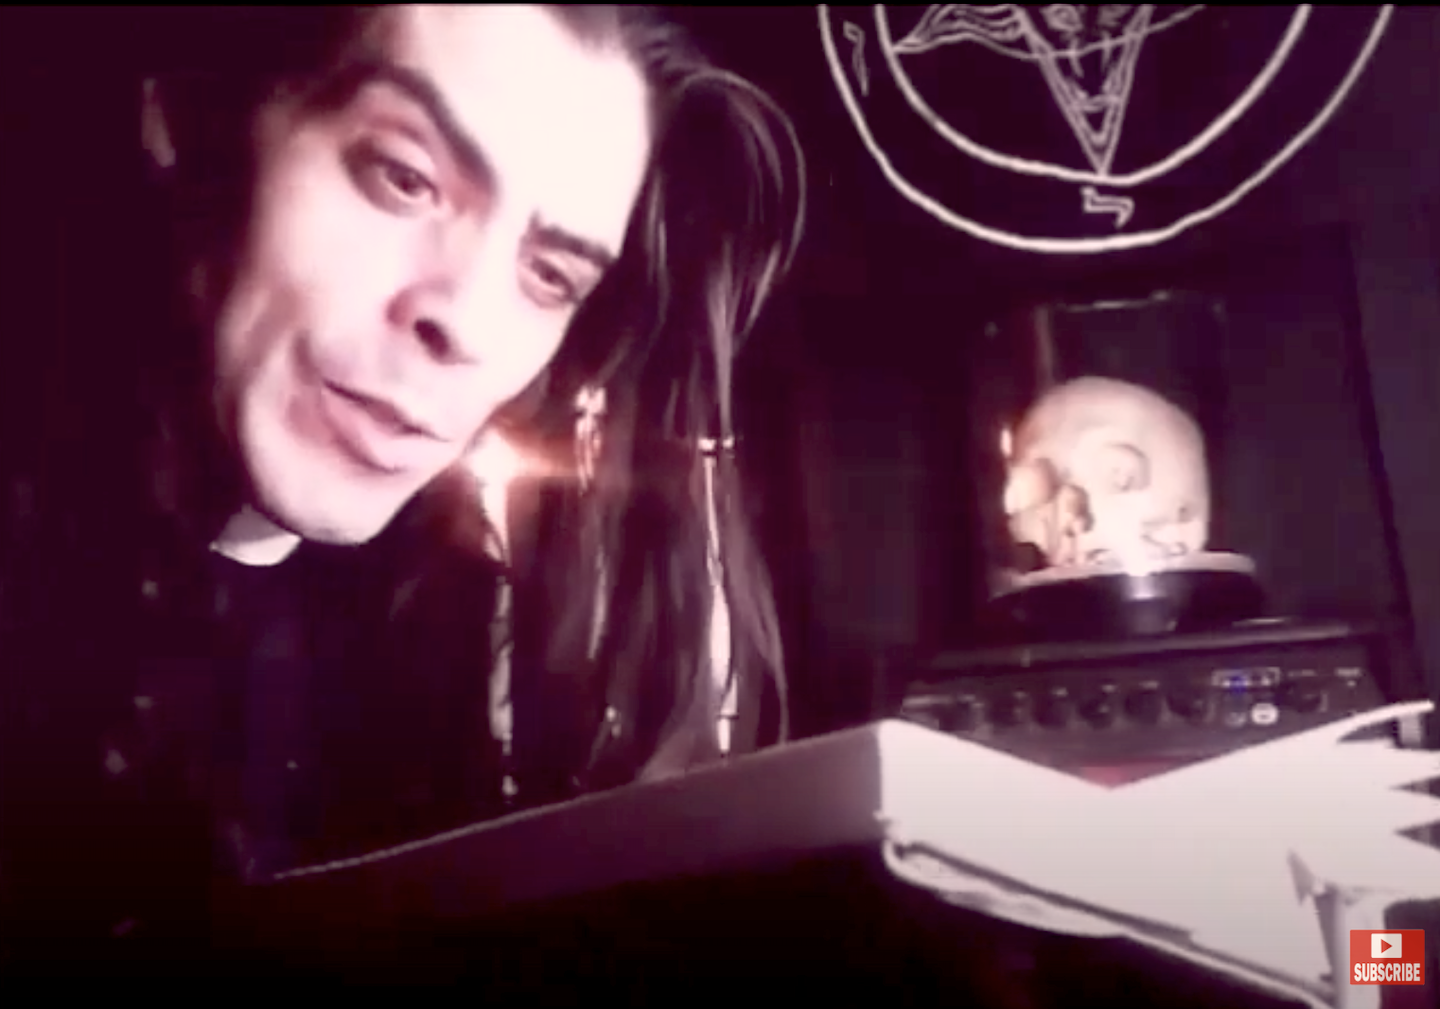 Count MoriVond reads from THE SATANIC SCRIPTURES